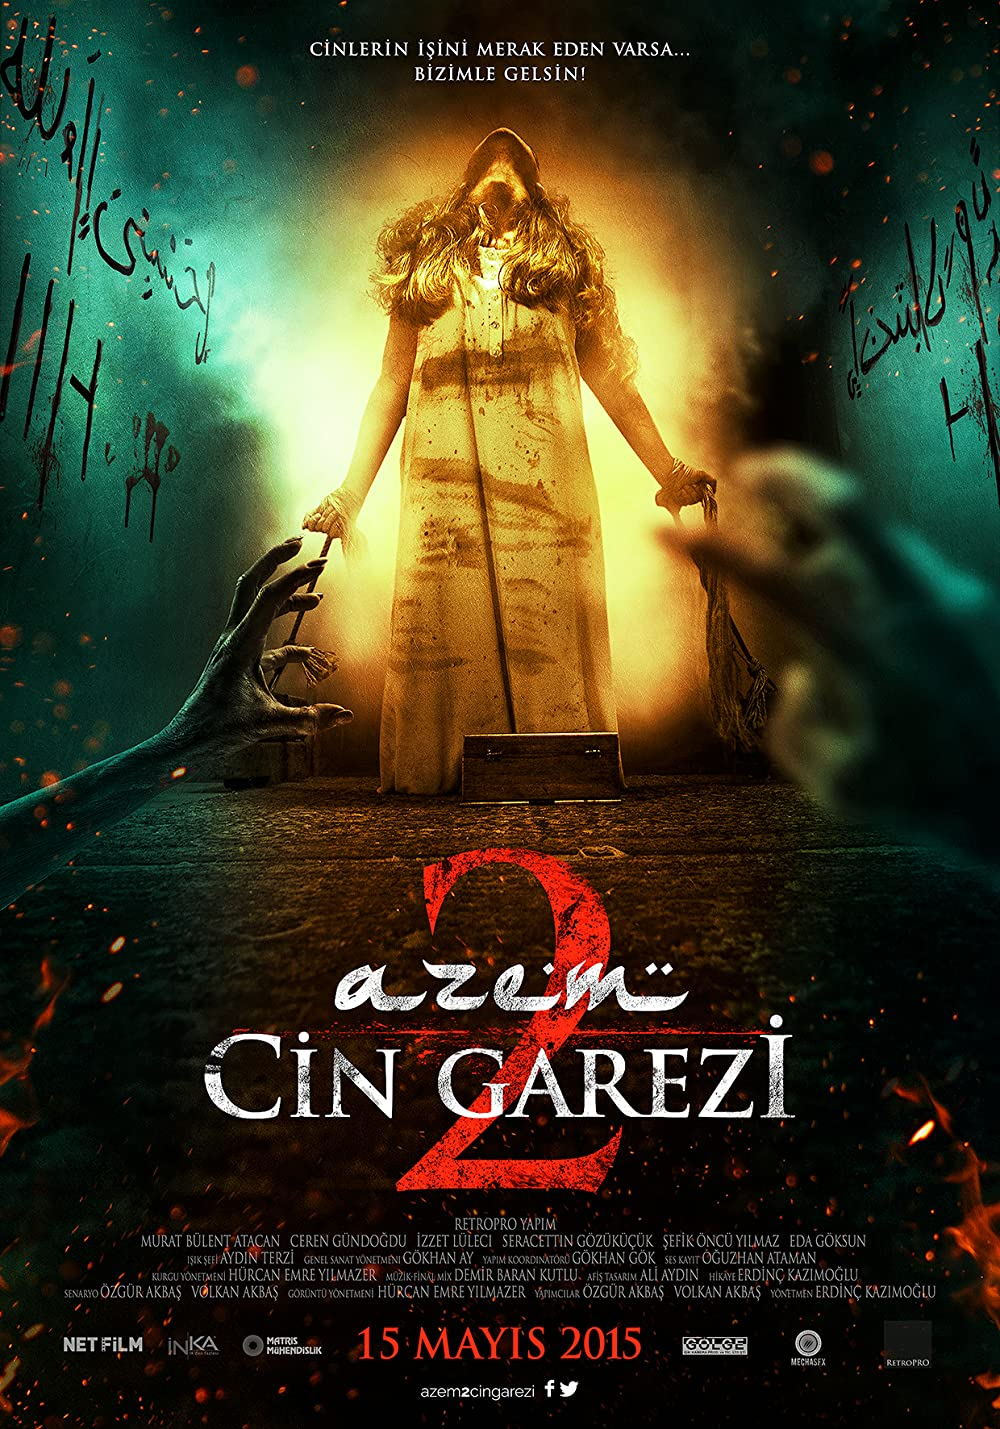 Azem 2: Cin Garezi 2015 Hindi Dual Audio 720p HDRip 700MB Download